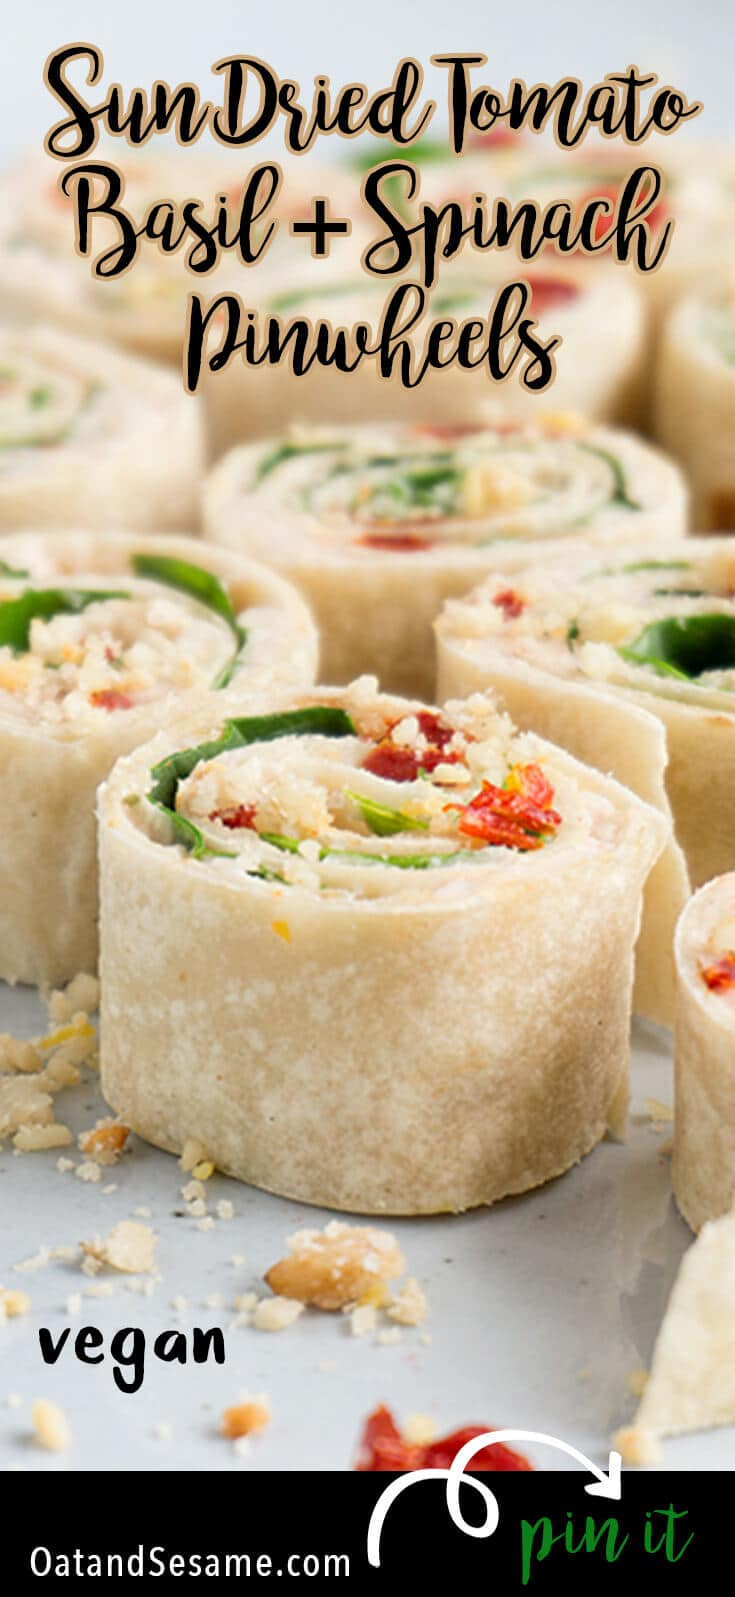 These Sun-Dried Tomato, Basil & Spinach Pinwheels make a perfect party appetizer or light lunch. They take about 15 minutes to make and are a healthy alternative to pinwheels made with cream cheese. | #APPETIZERS| #LUNCH | #VEGETARIAN | #VEGAN | #ROLL UPS | #PINWHEELS | #Recipes at OatandSesame.com